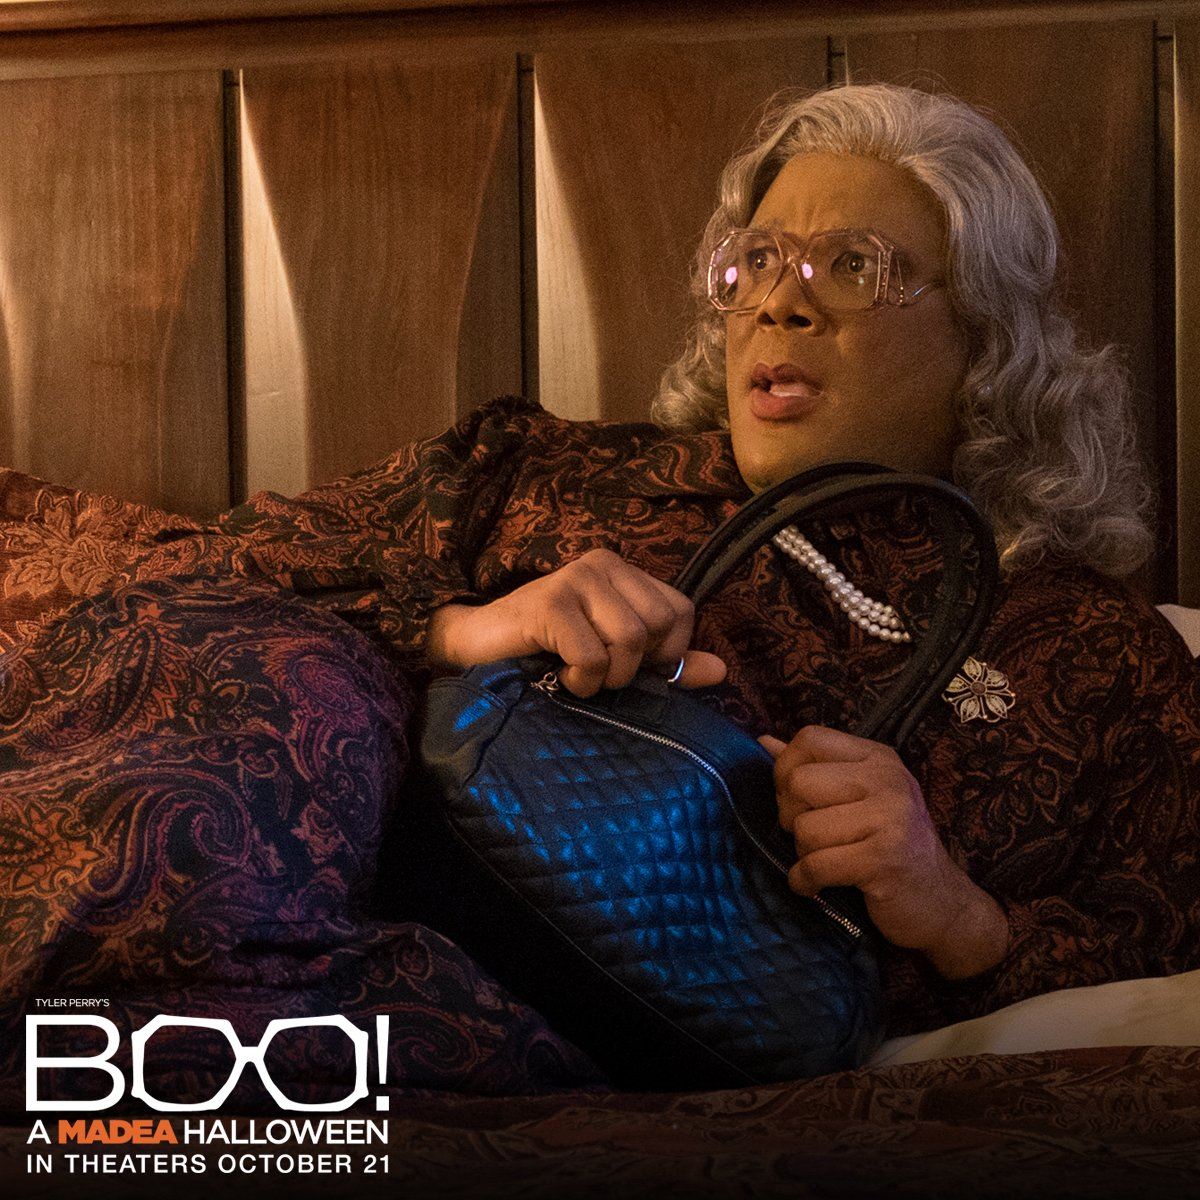 Ghosts & zombies & Madea, oh my! @TylerPerry's Boo! A #MadeaHalloween spooks theaters October 21.